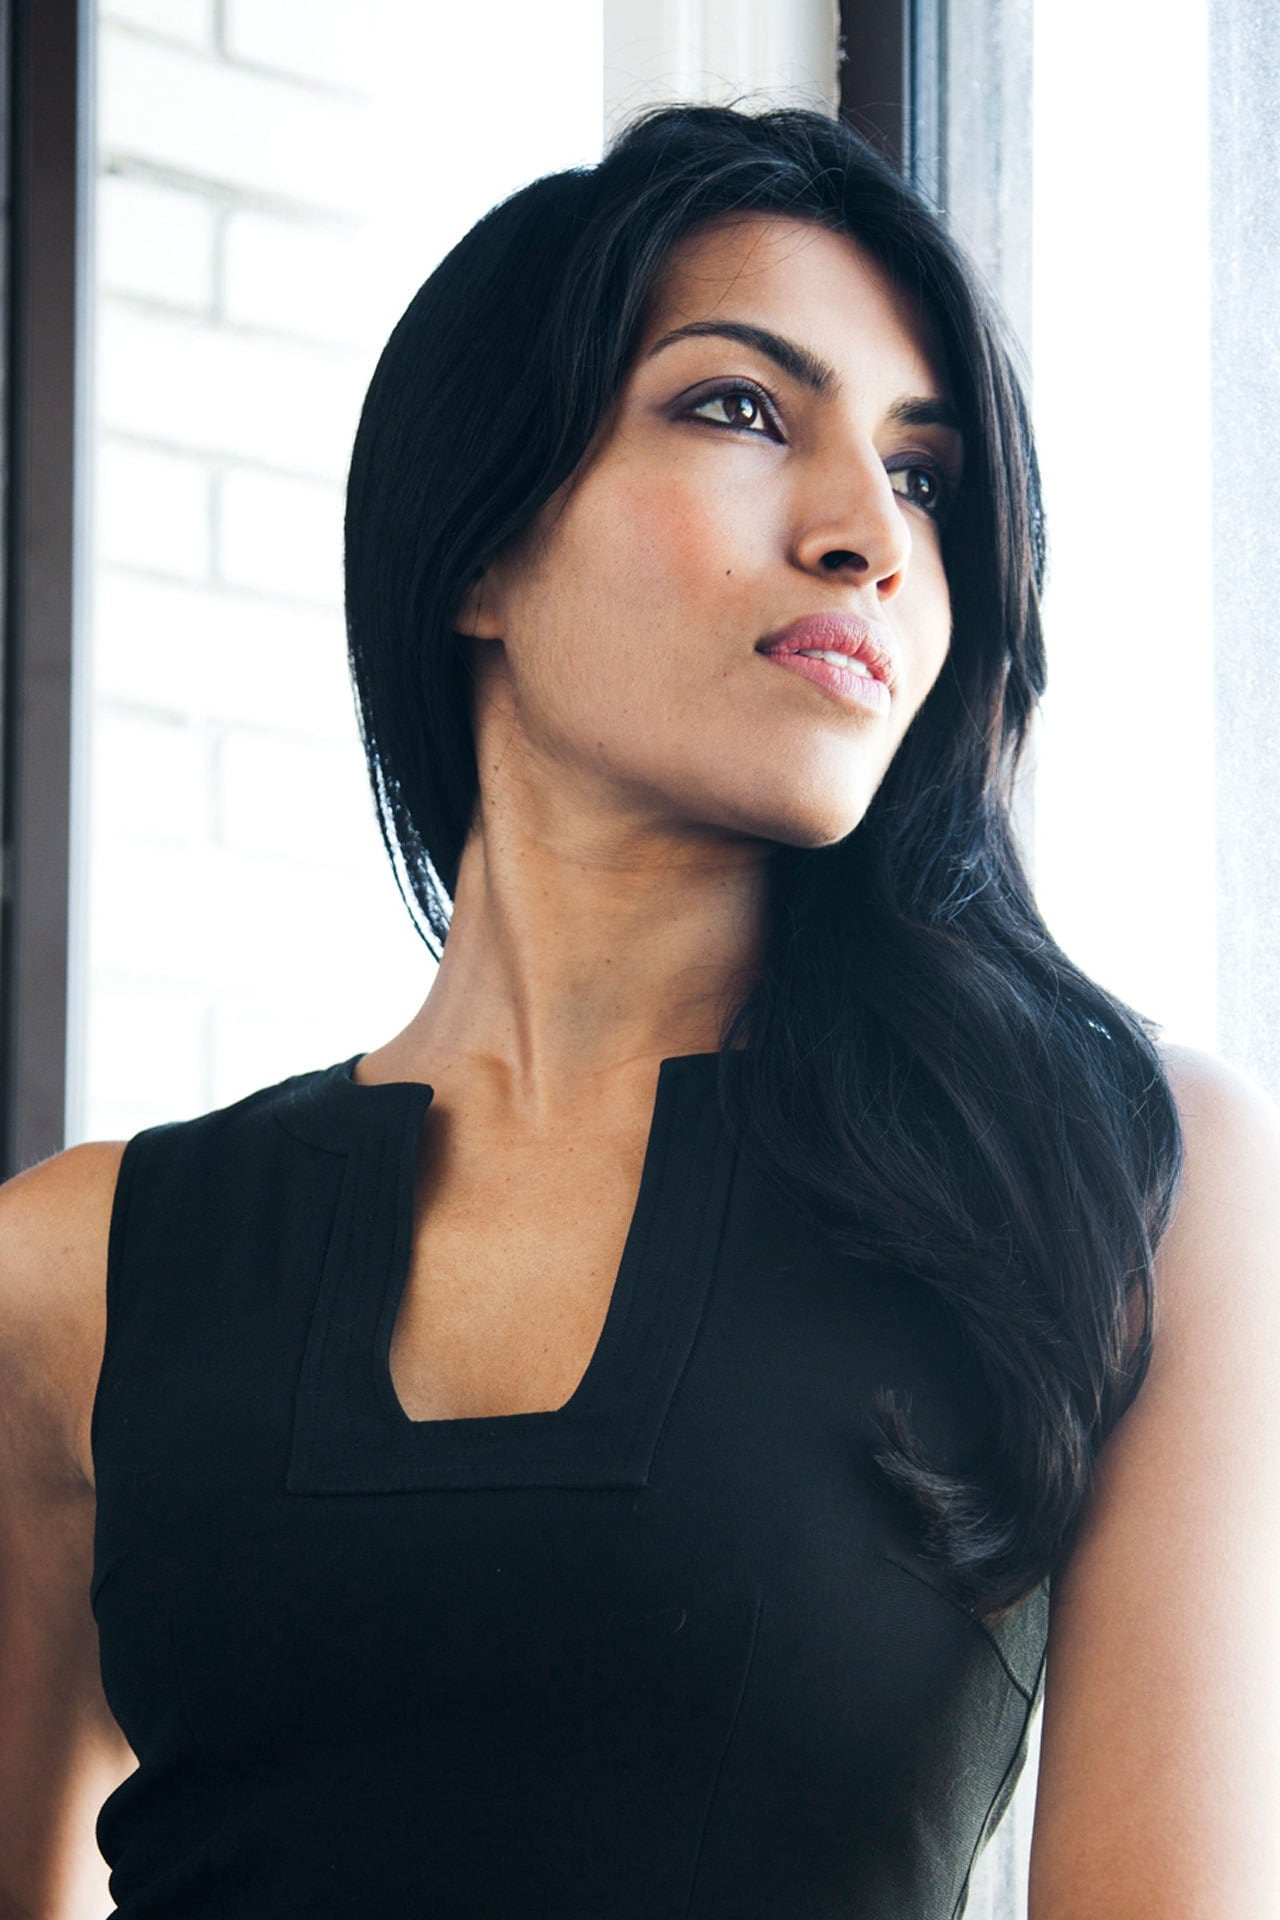 Leila Janah, founder and CEO of Samasource and LXMI